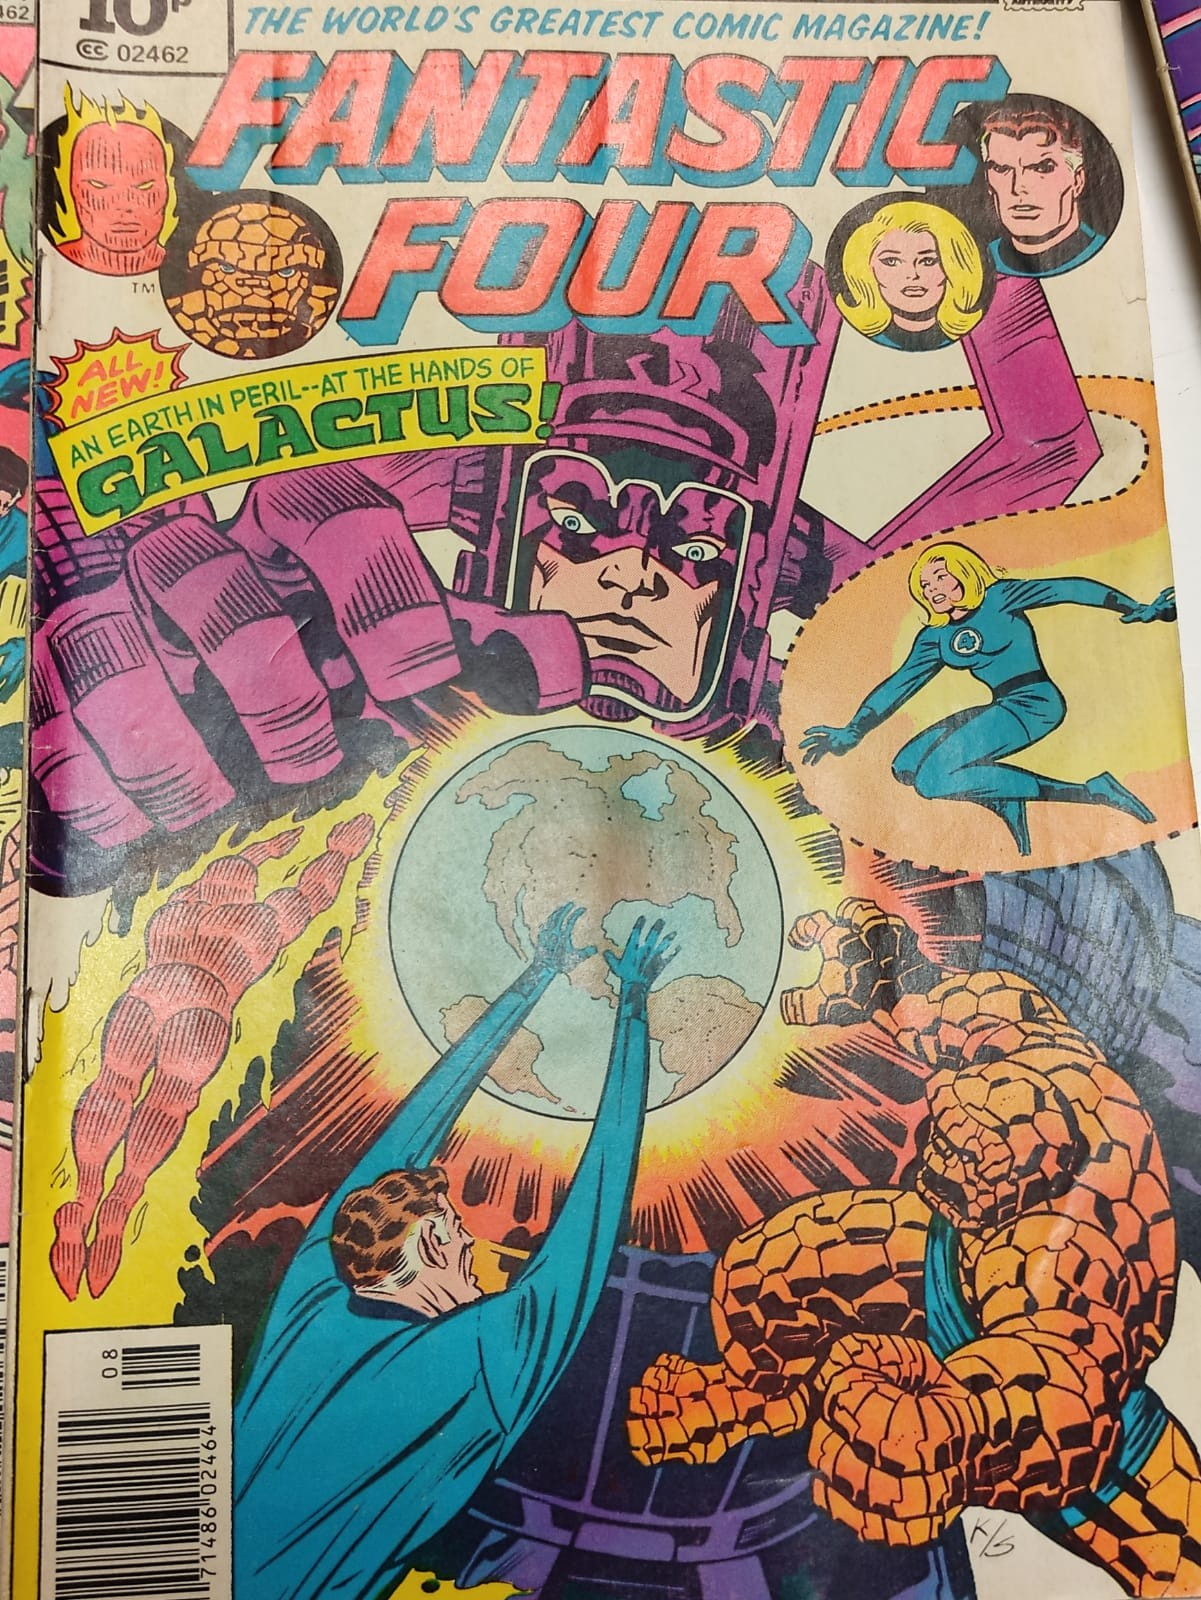 30x Marvel Fantastic four mid 1970s editions. Used, in good condition. - Image 15 of 17